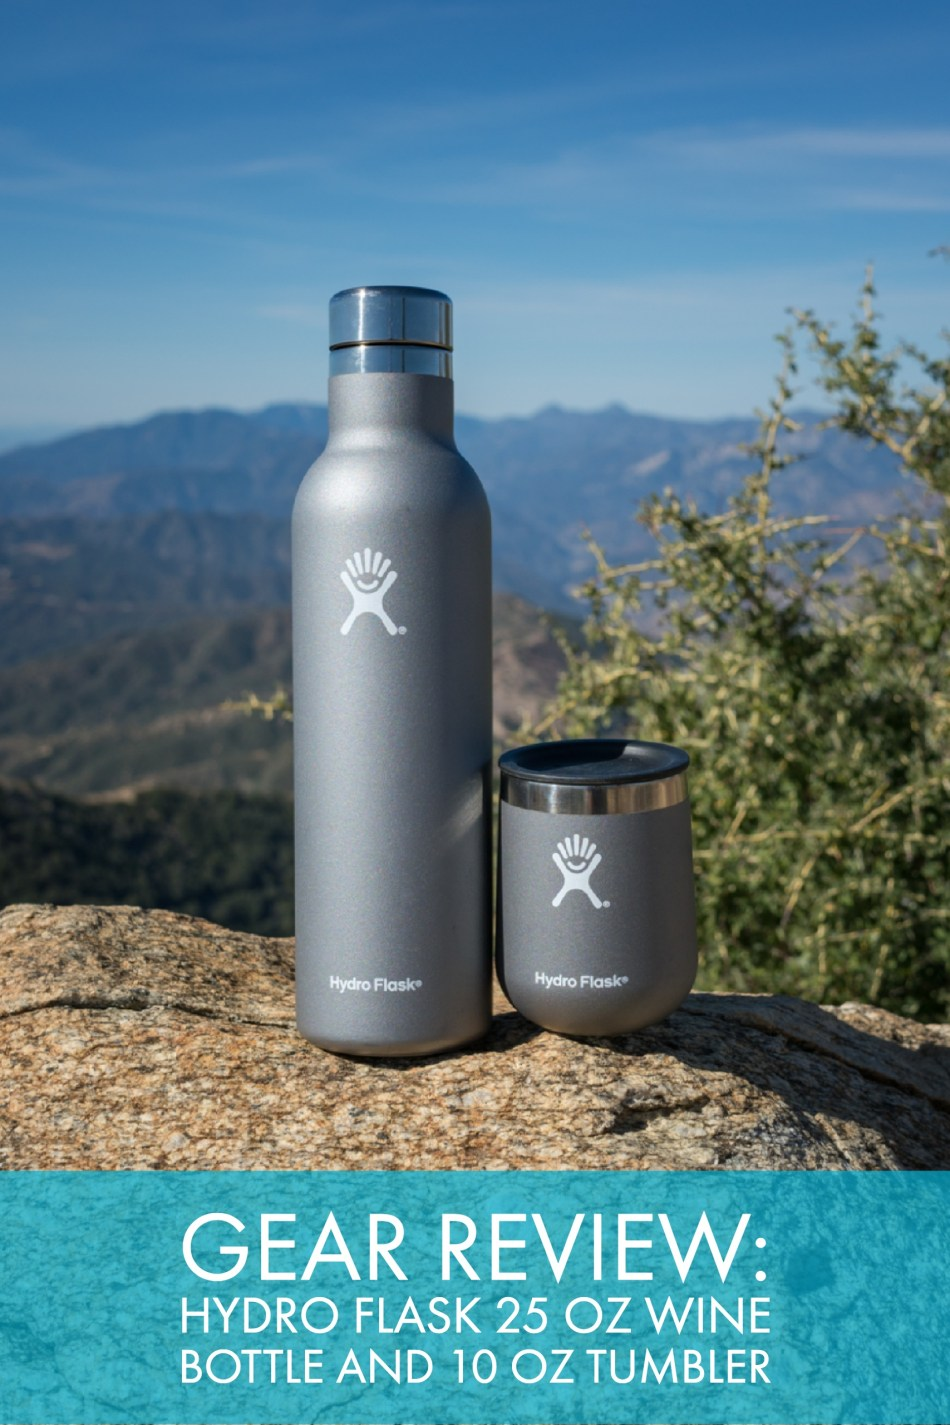 Review: Hydro Flask 25 oz Wine Bottle And 10 oz Tumbler